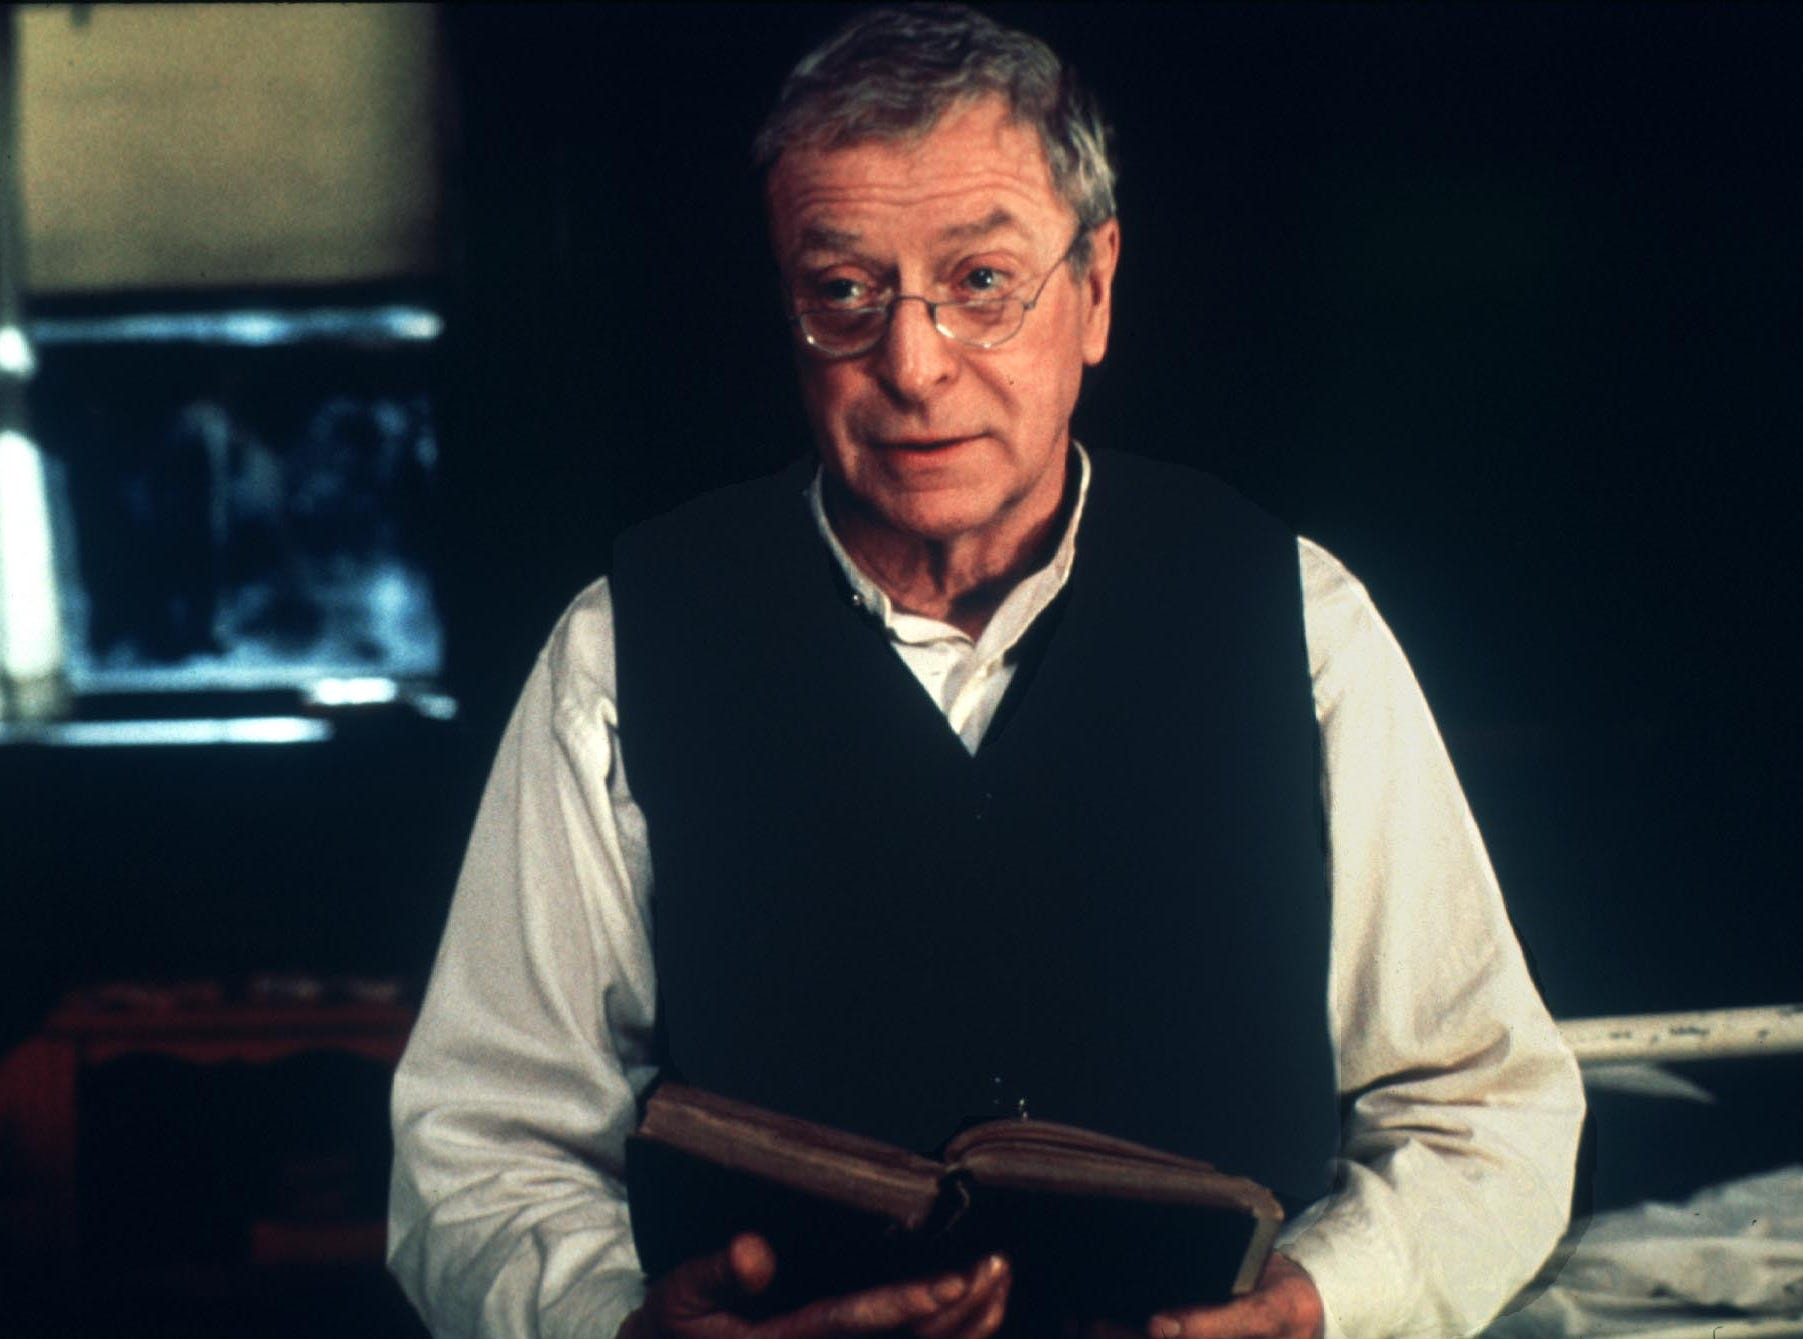 """Actor Michael Caine is shown in a scene from the film """" The Cider House Rules. """"  Caine received an Academy Award nomination for best supporting actor February 15.  The Academy Awards will be presented March 26 in Los Angeles."""